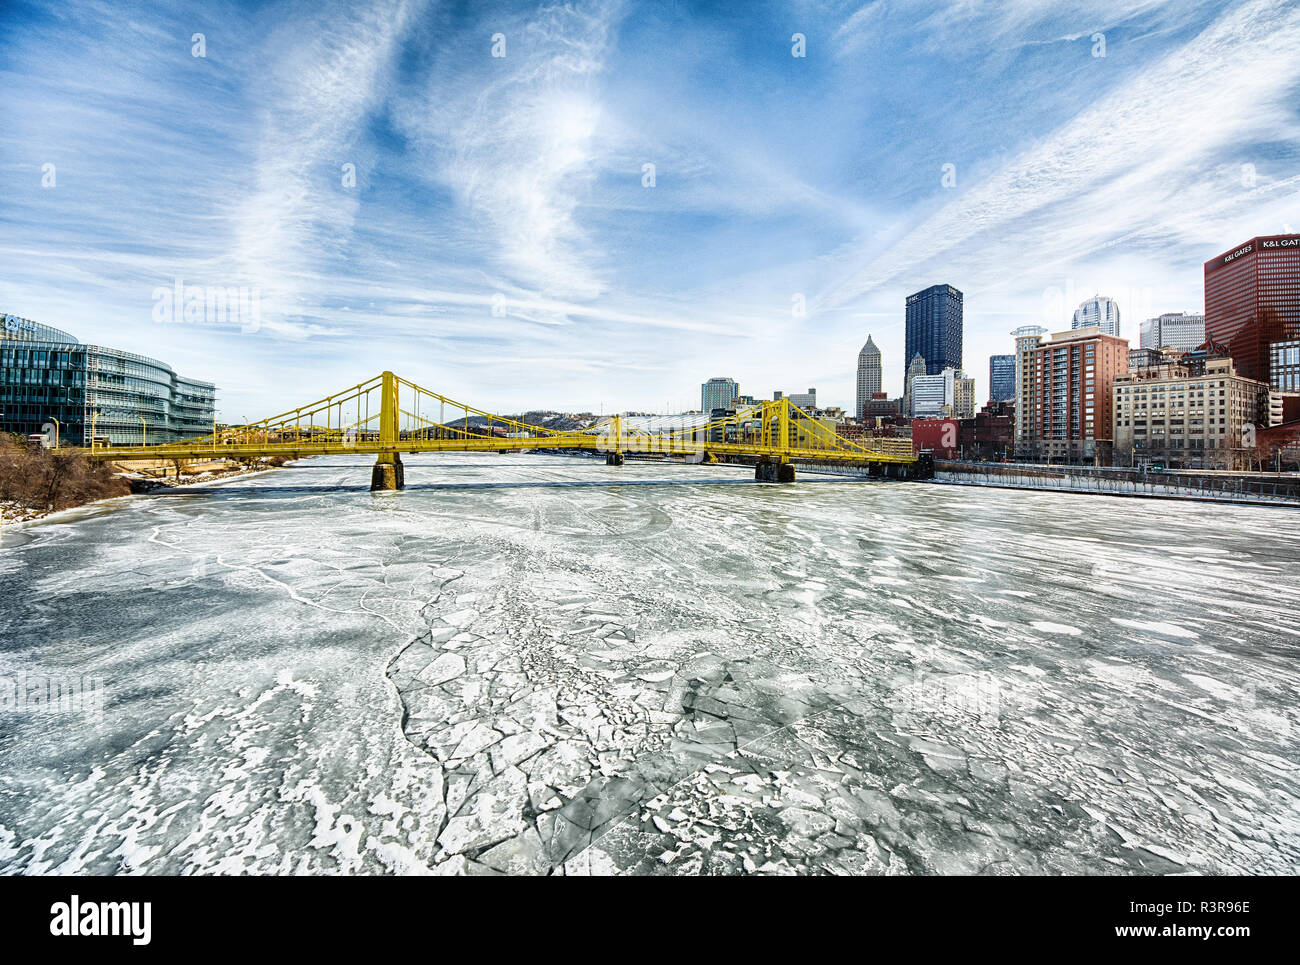 The Allegheny River frozen solid during subzero weather in